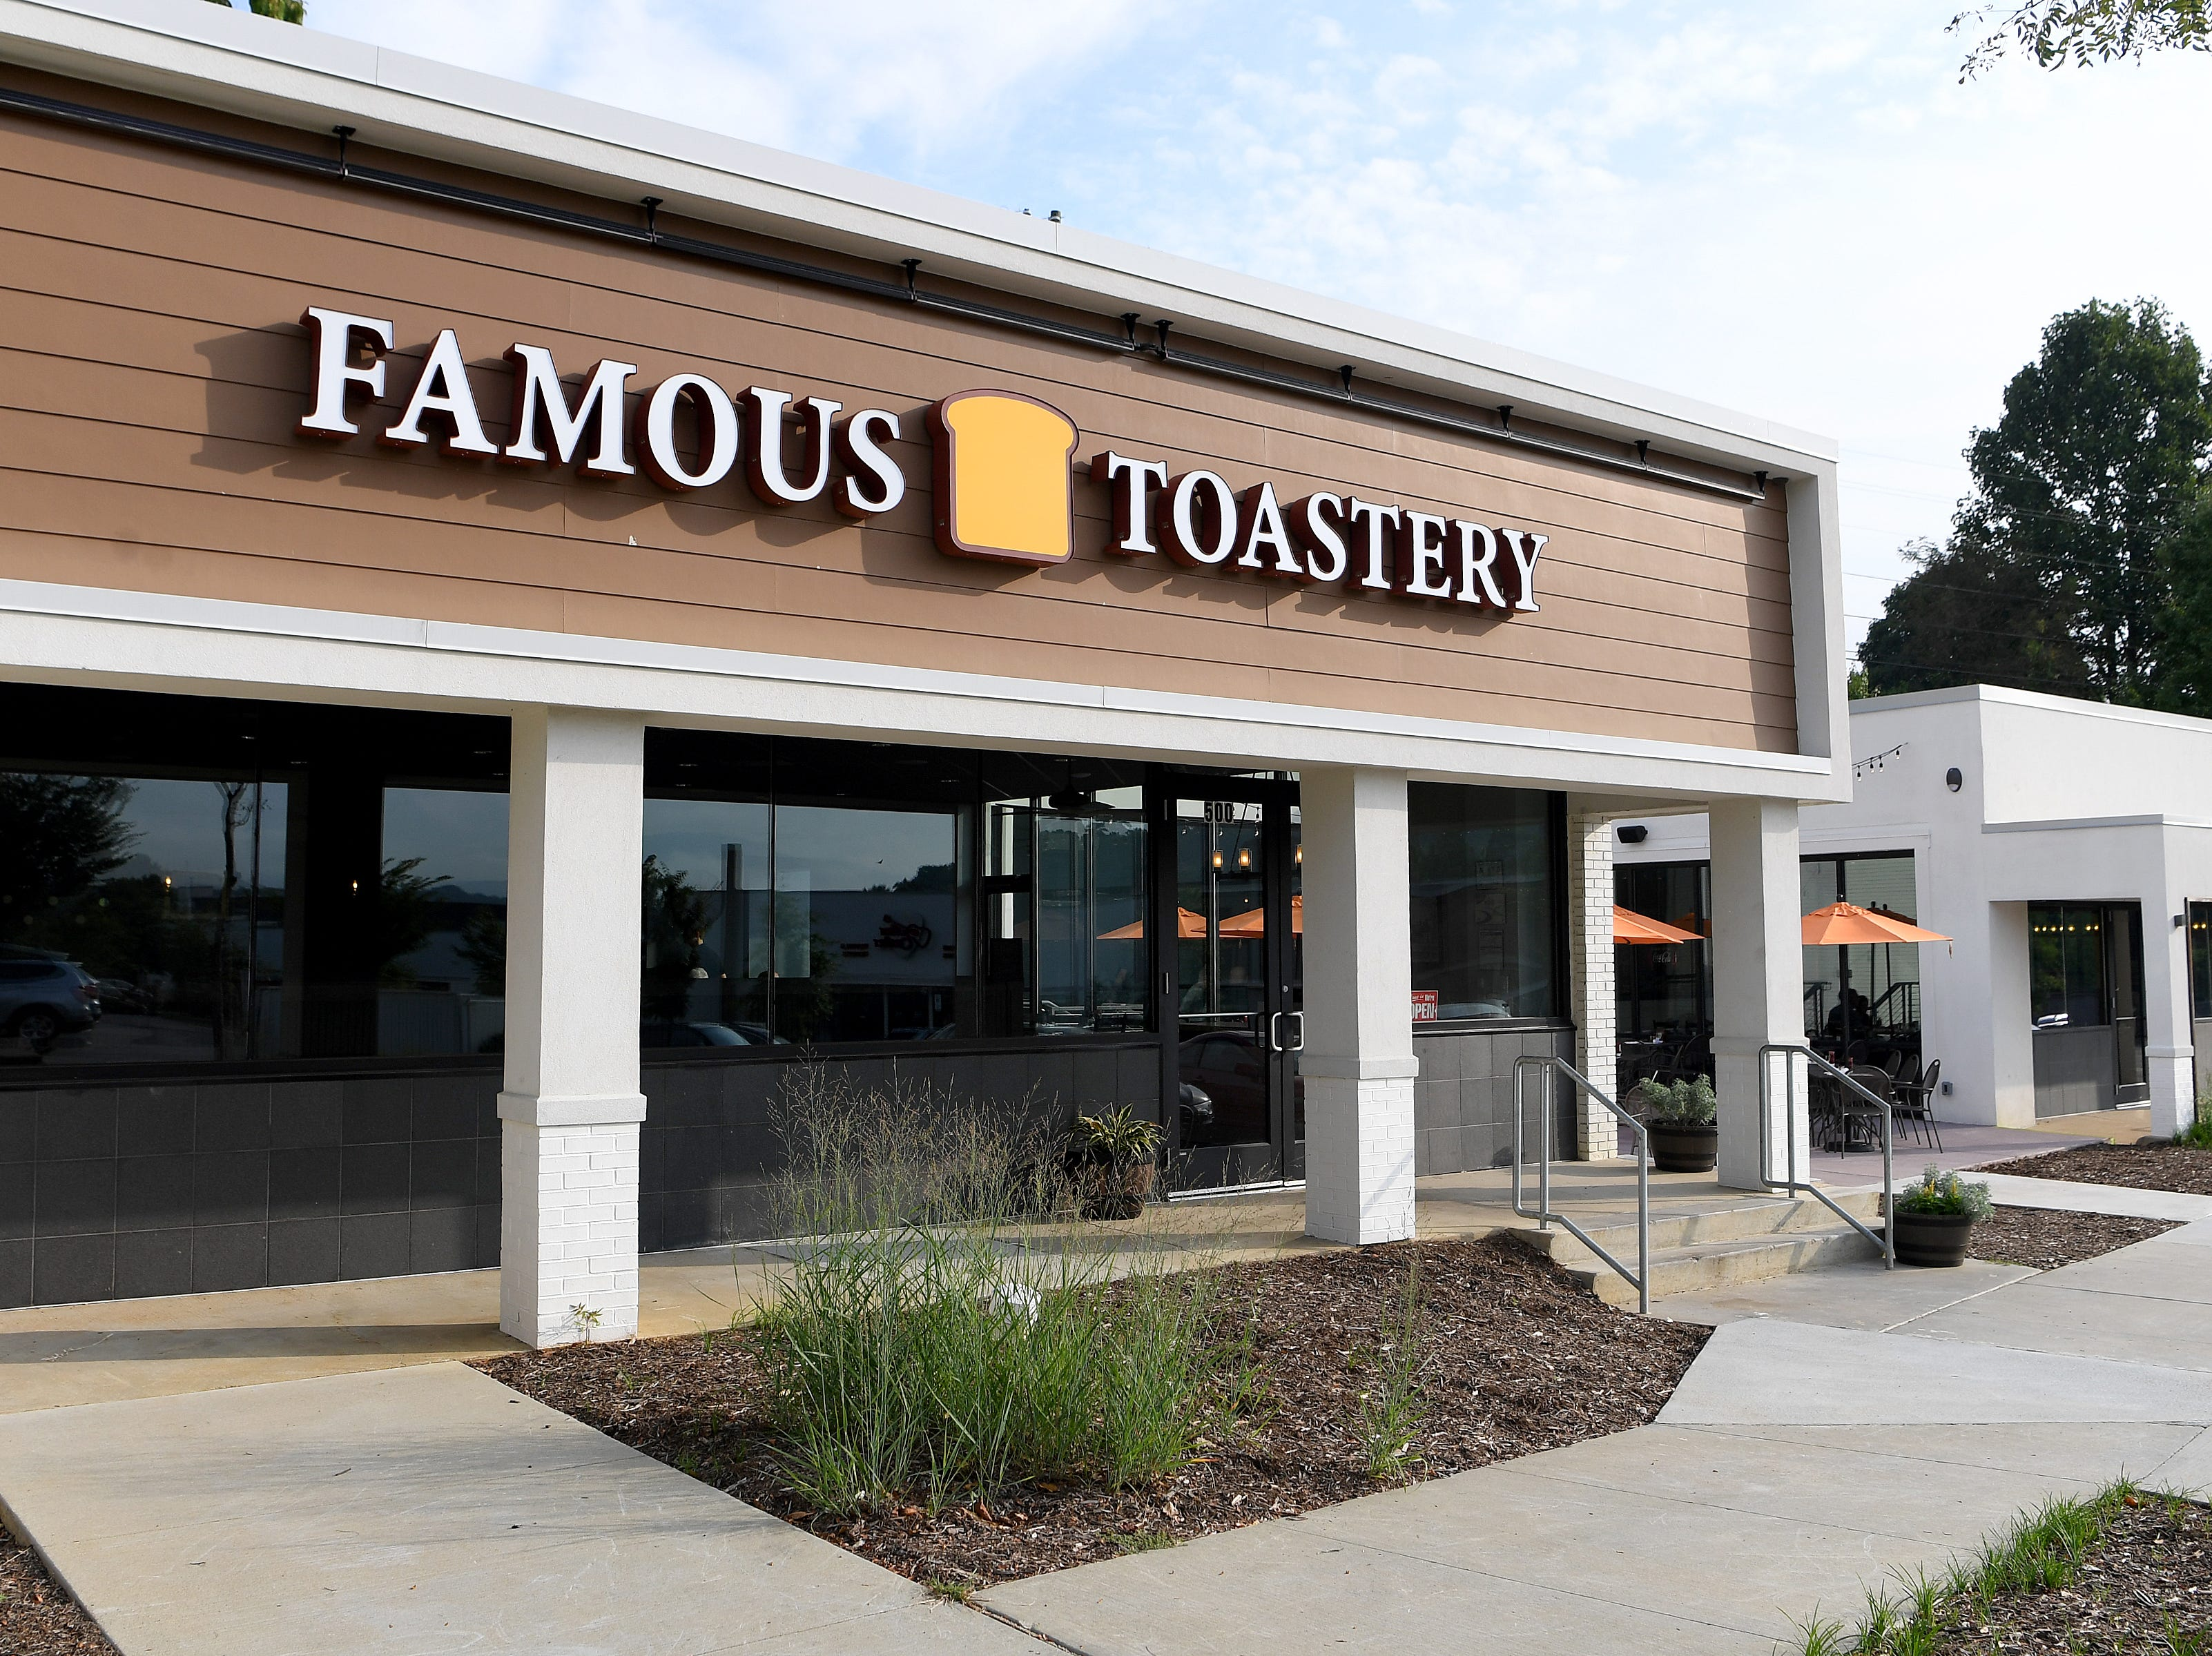 Famous Toastery, a franchise started in Huntersville, North Carolina, has opened in East Asheville in the shopping plaza with Whole Foods.